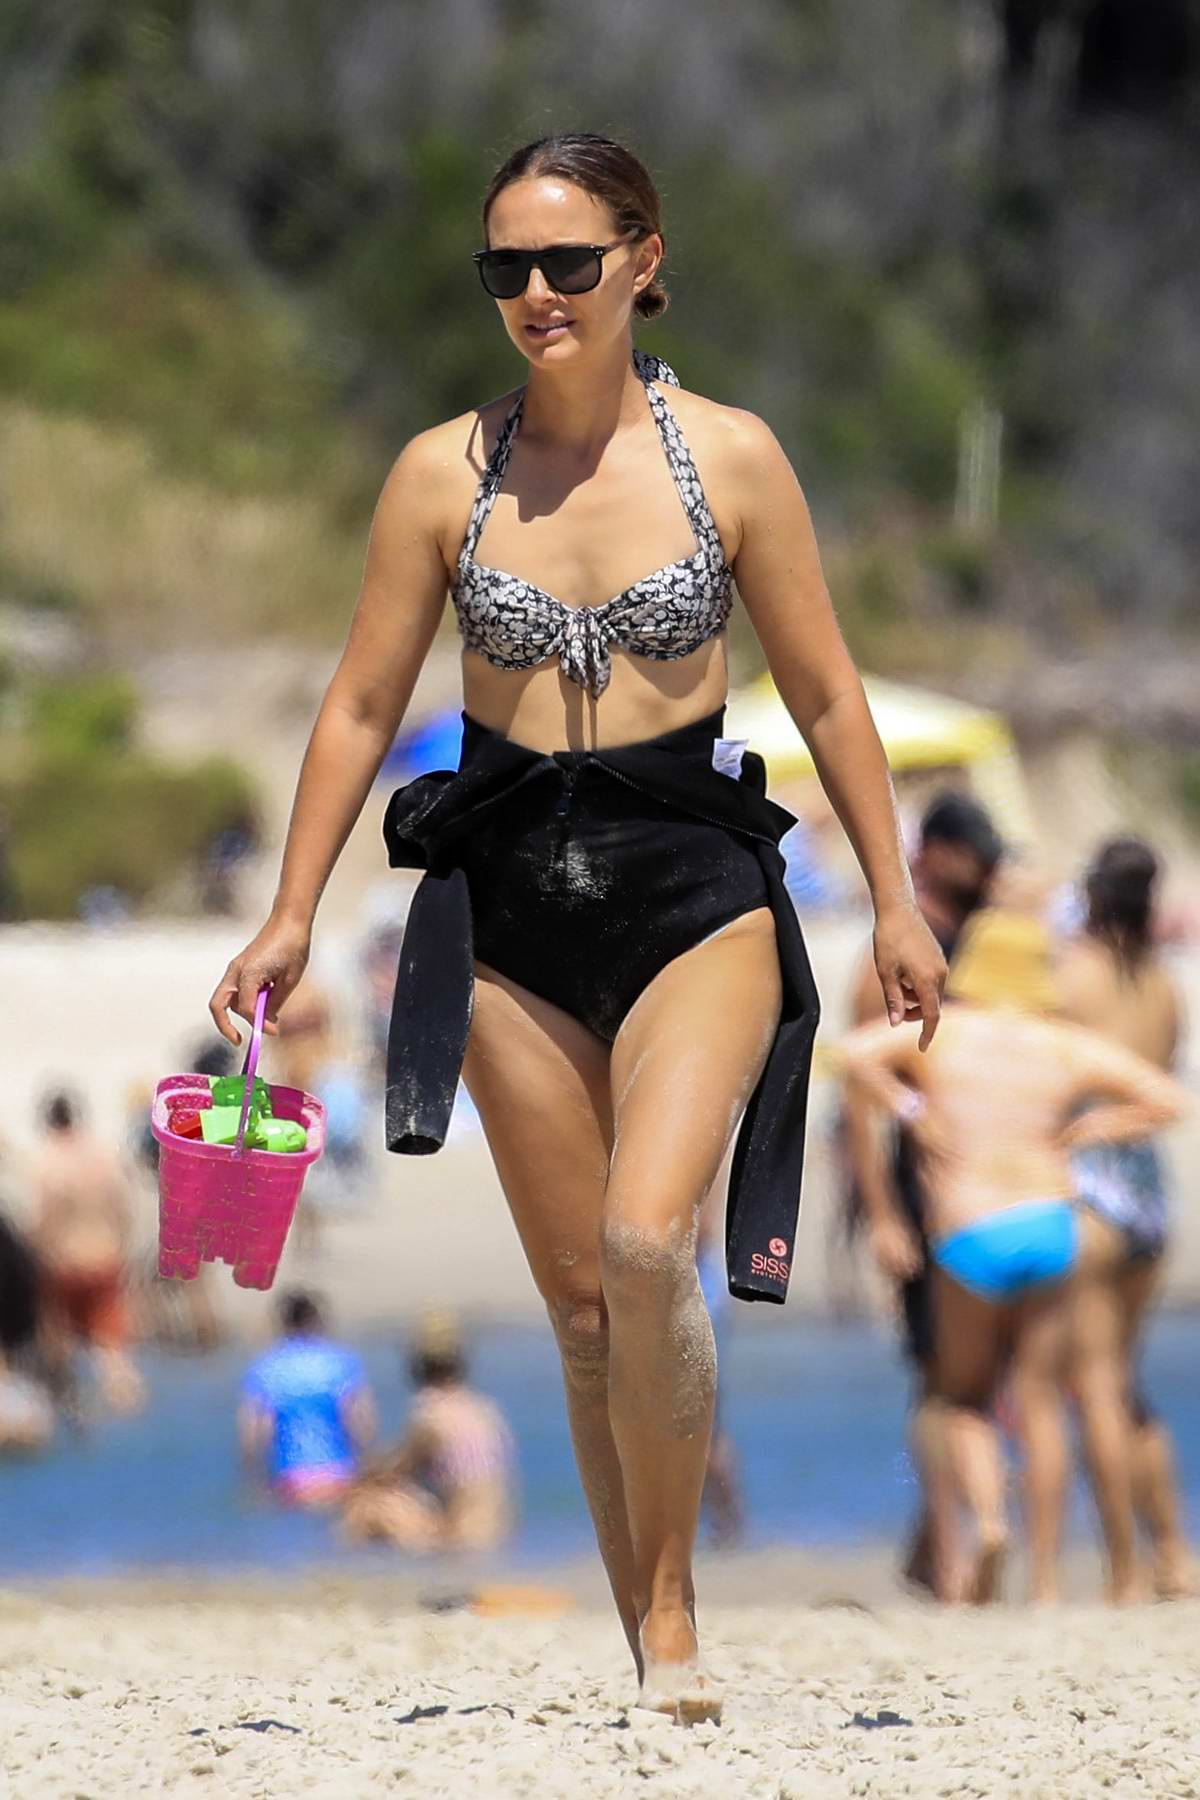 Natalie Portman spotted in a patterned bikini top while enjoying a beach day in Byron Bay, Australia